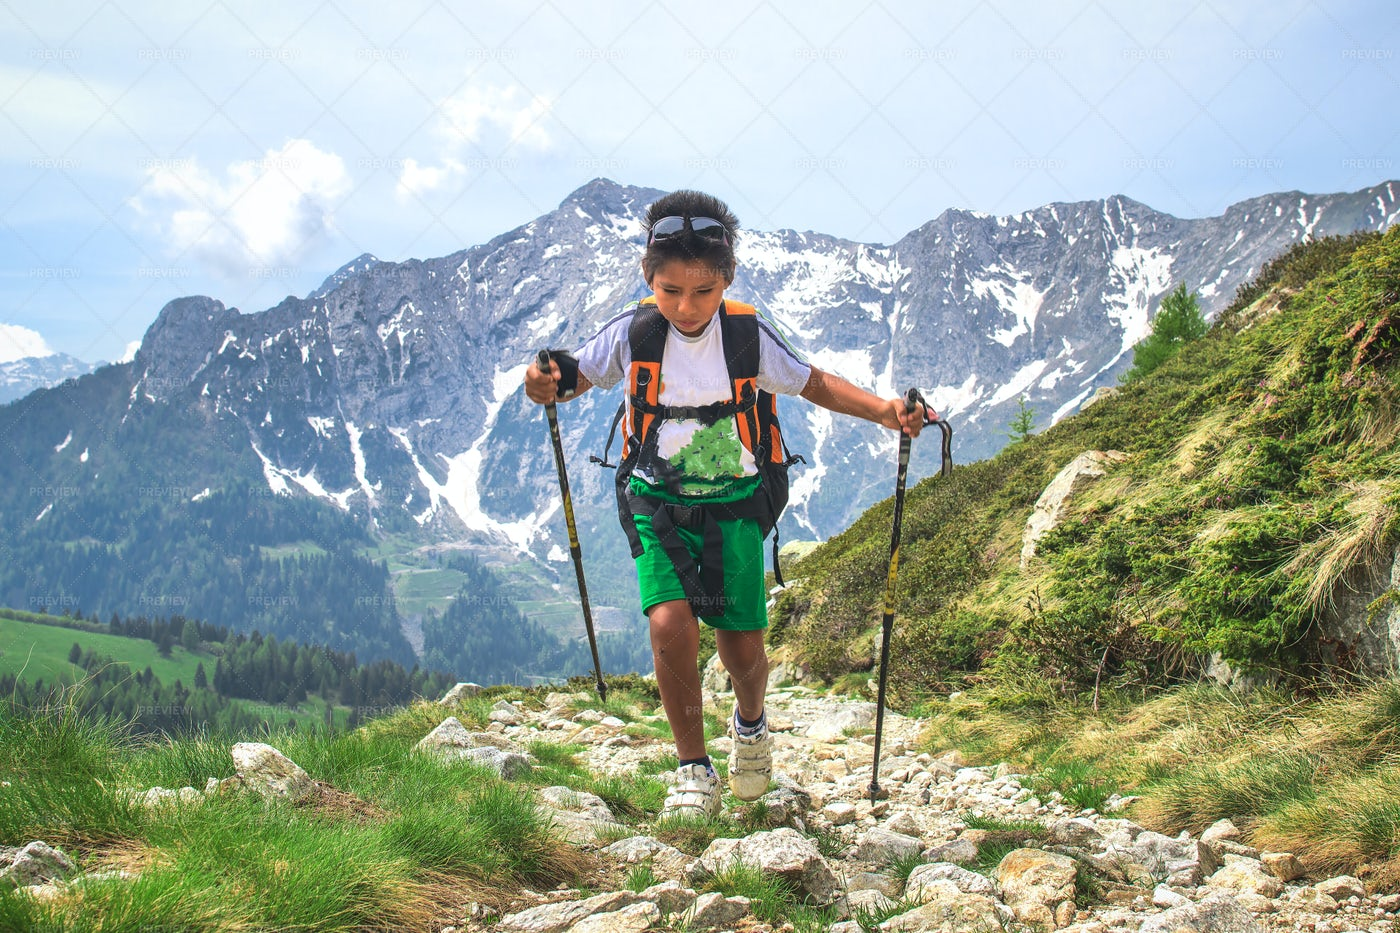 Young Boy On A Hike: Stock Photos